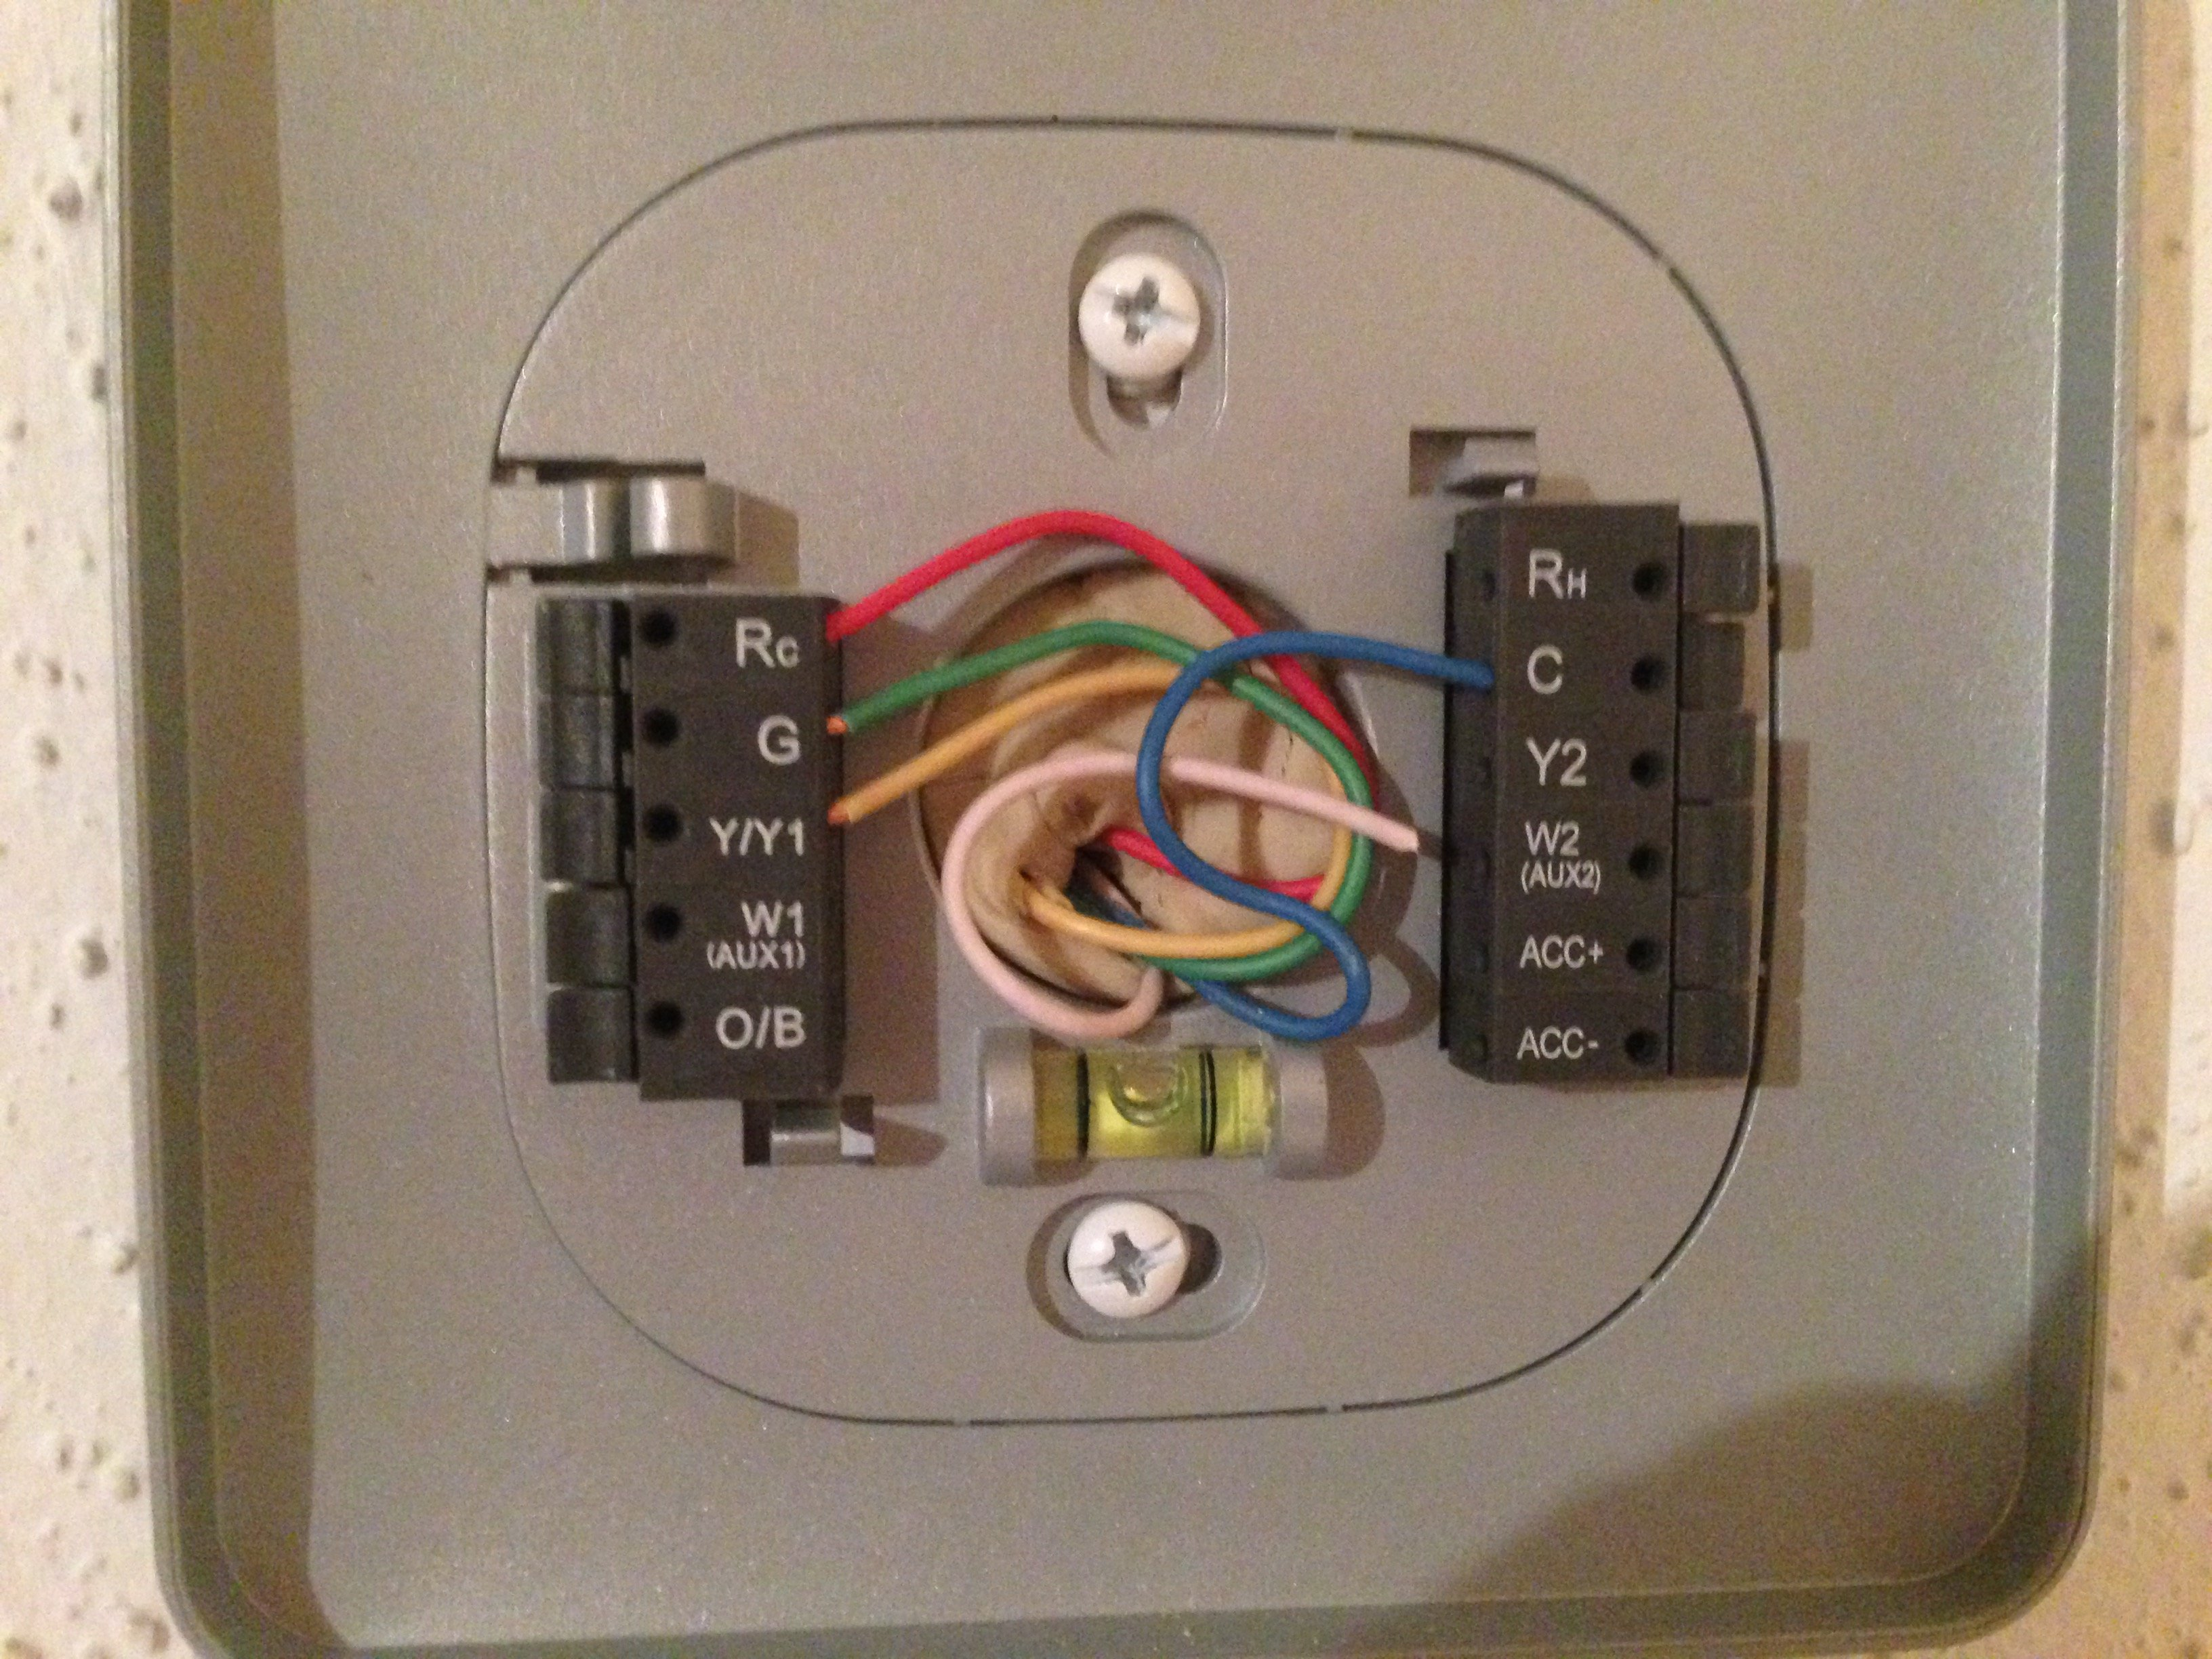 Wiring Diagram Together With Heat Pump Thermostat Wiring Color Code